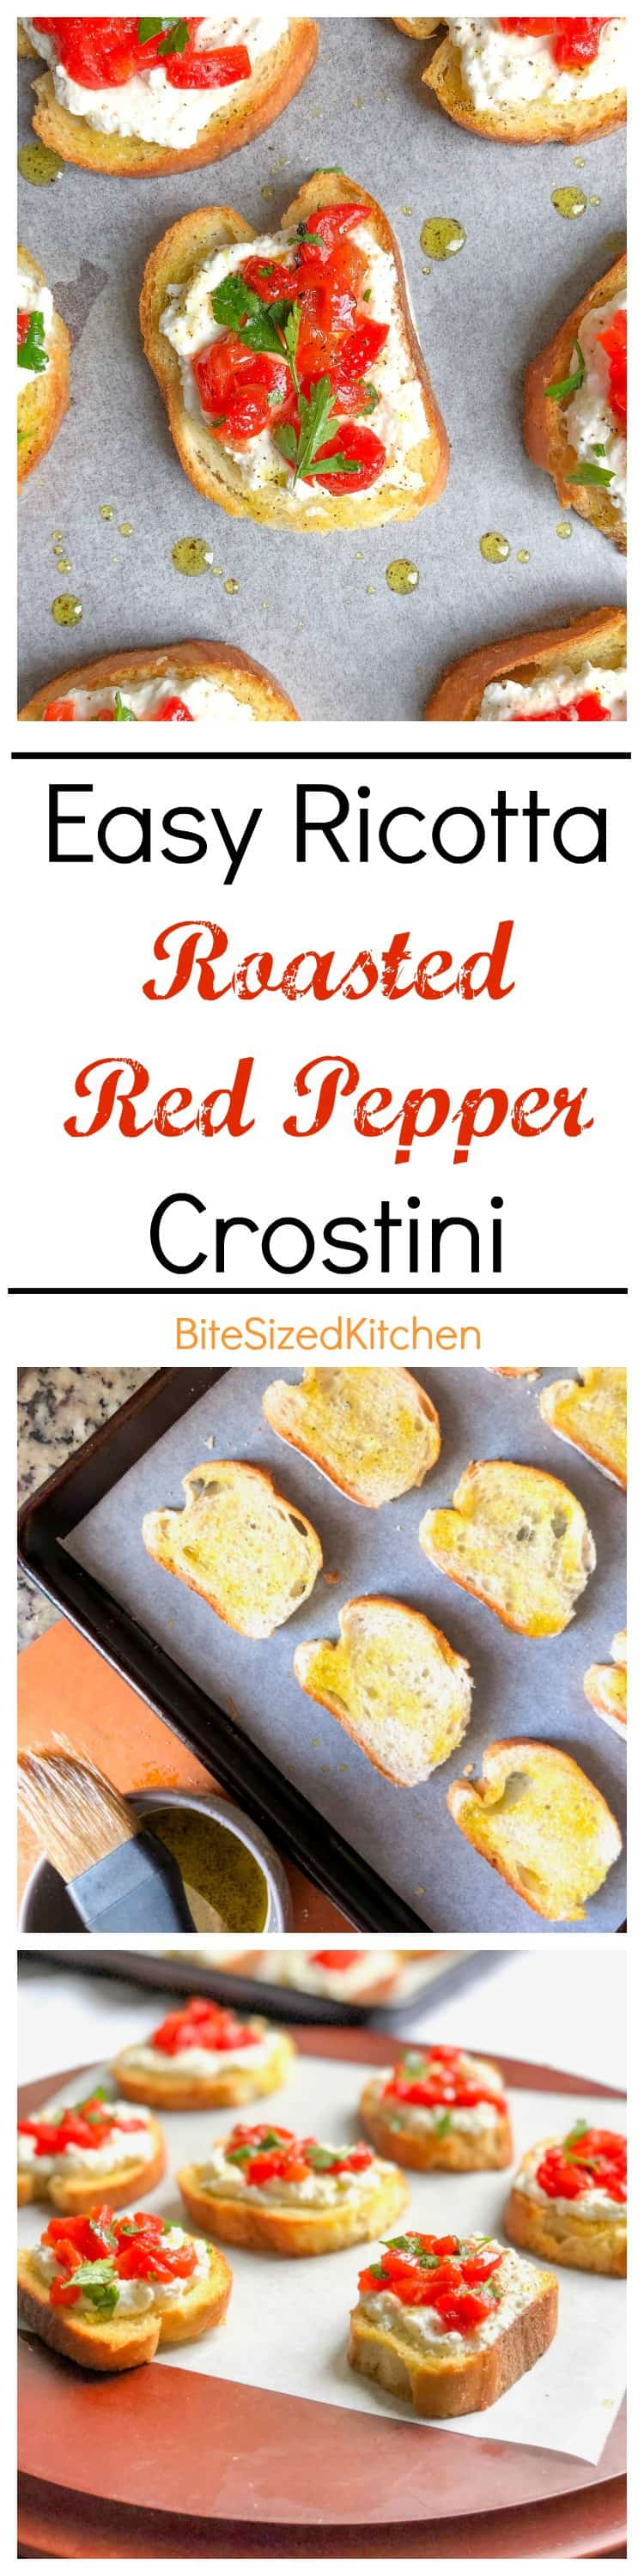 Easy crostini party appetizer recipe | Crostini with ricotta | Roasted red pepper appetizer | How to make crostini | Easy Crostini Appetizer | Crostini Toppings | Garlic Crostini | #appetizer #bitesized #ricotta #crostini